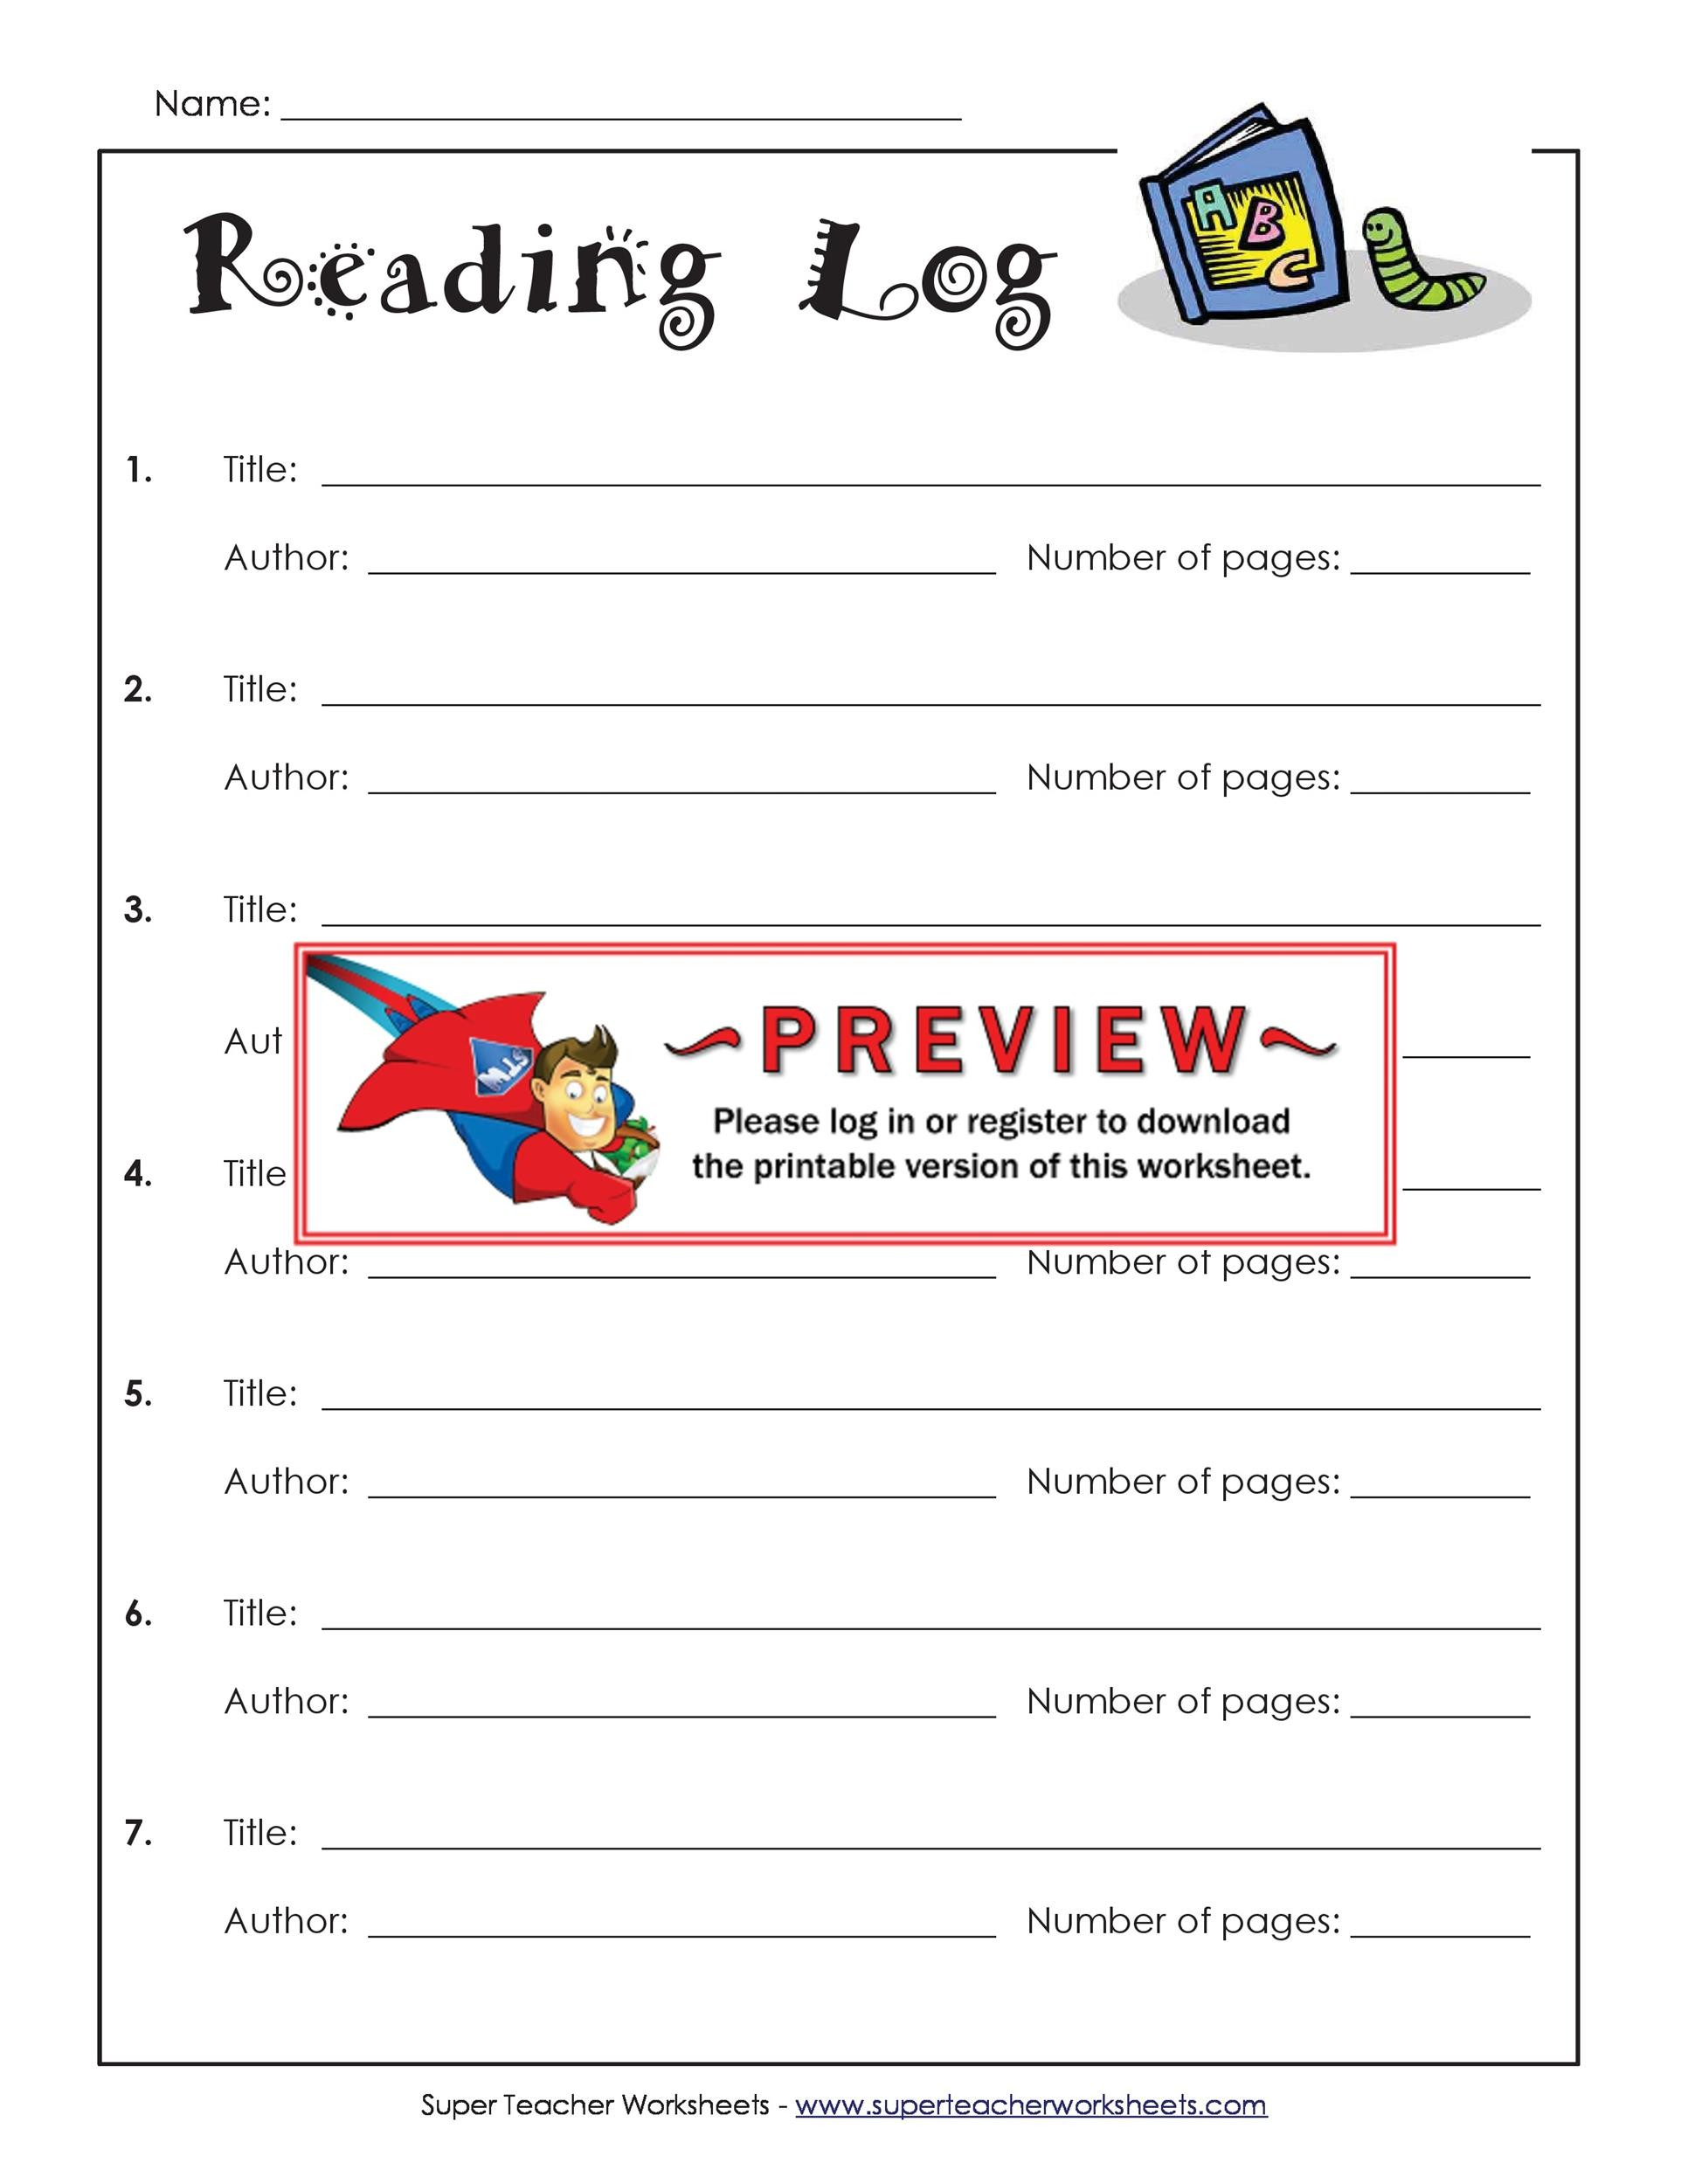 47 Printable Reading Log Templates for Kids, Middle School & Adults